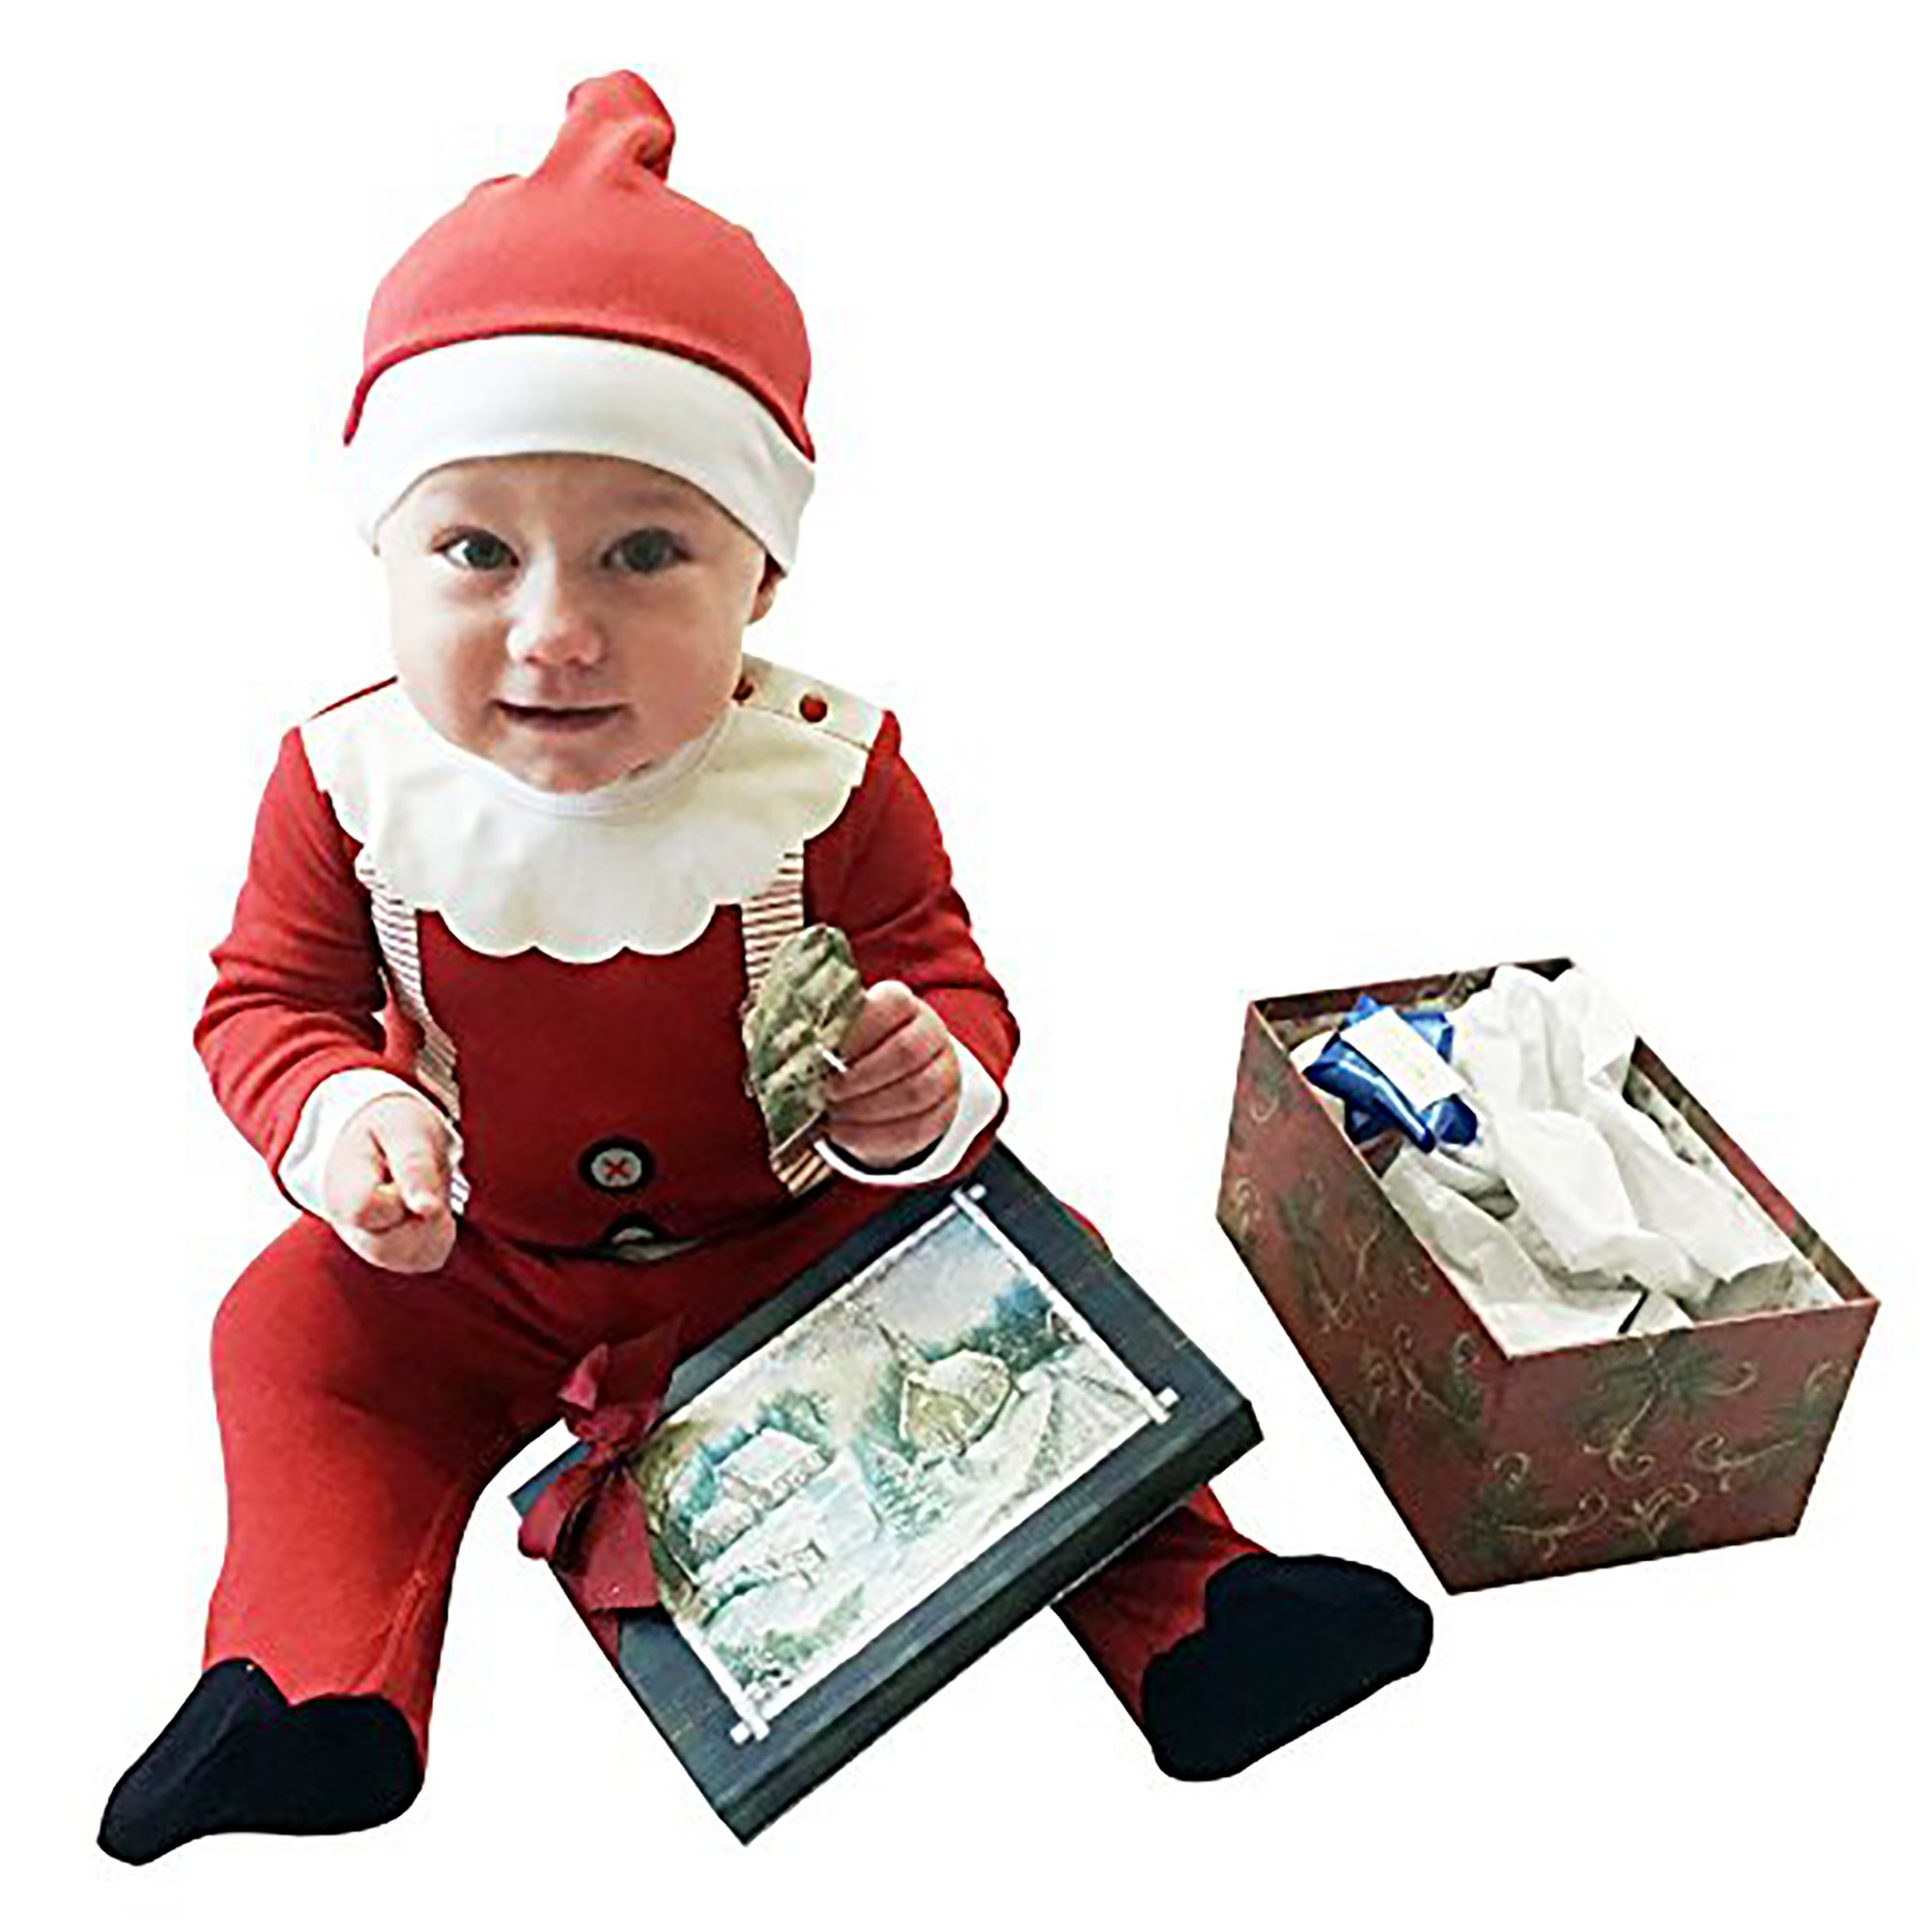 Fayfaire Christmas Pajamas Boutique Quality: Adorable Xmas Santa Suit with Hat 6-12M by Fayfaire (Image #5)